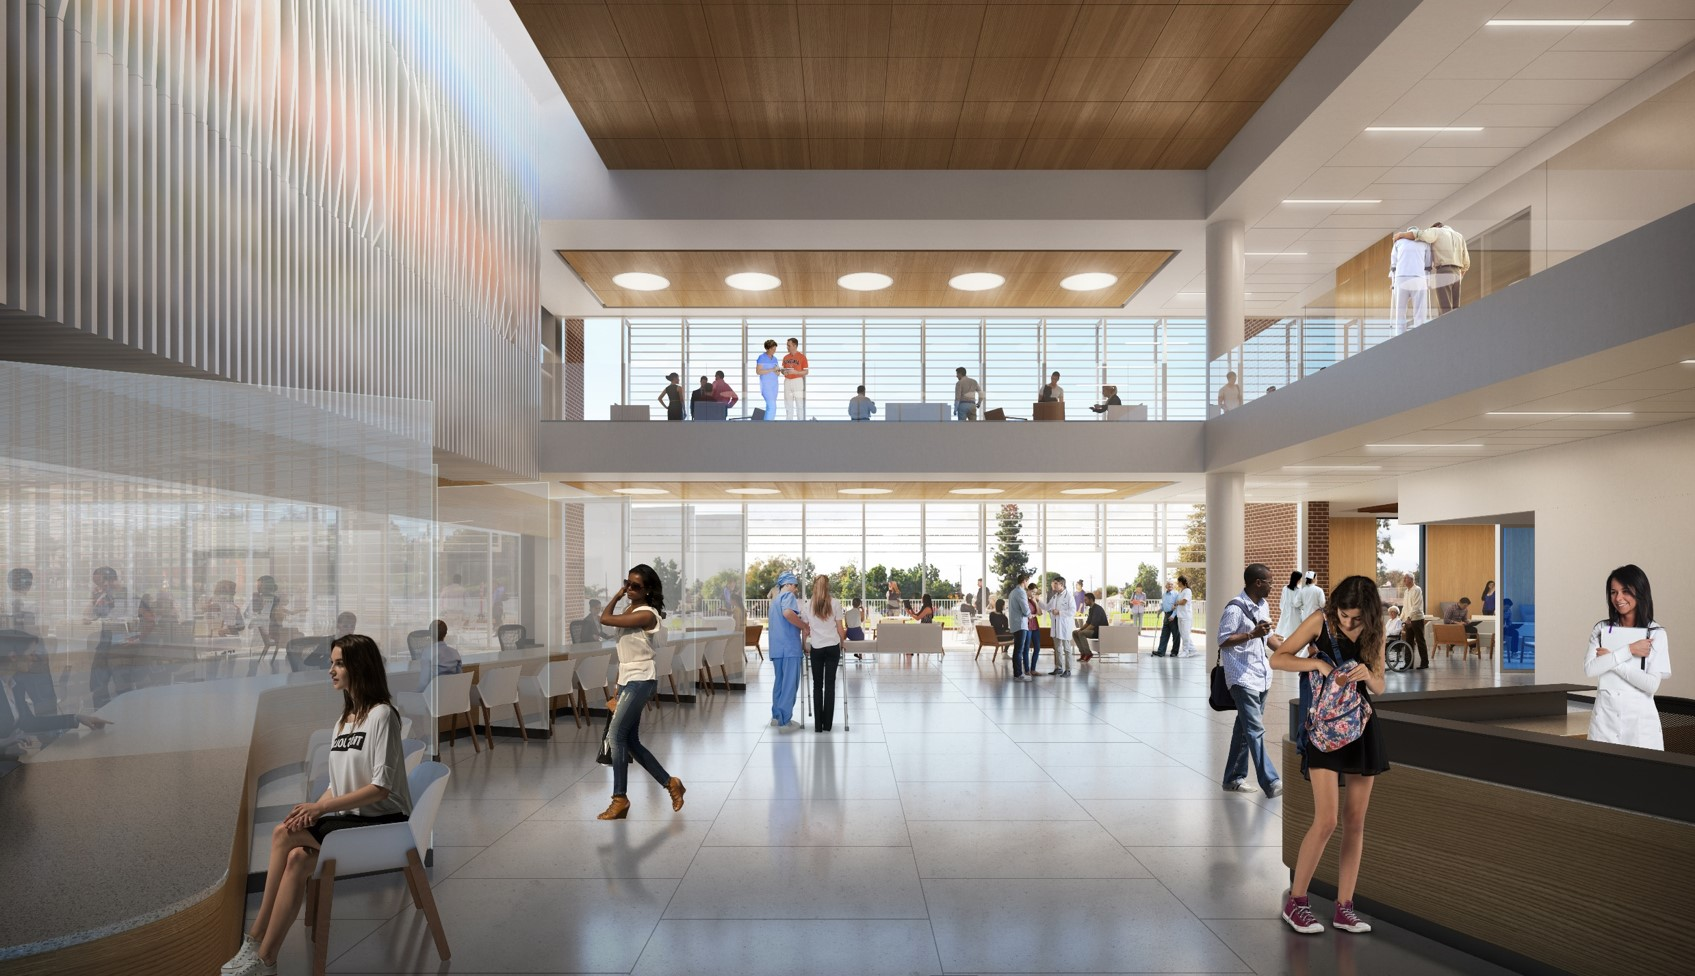 A rendering of the lobby of the orthopedic outpatient care facility.